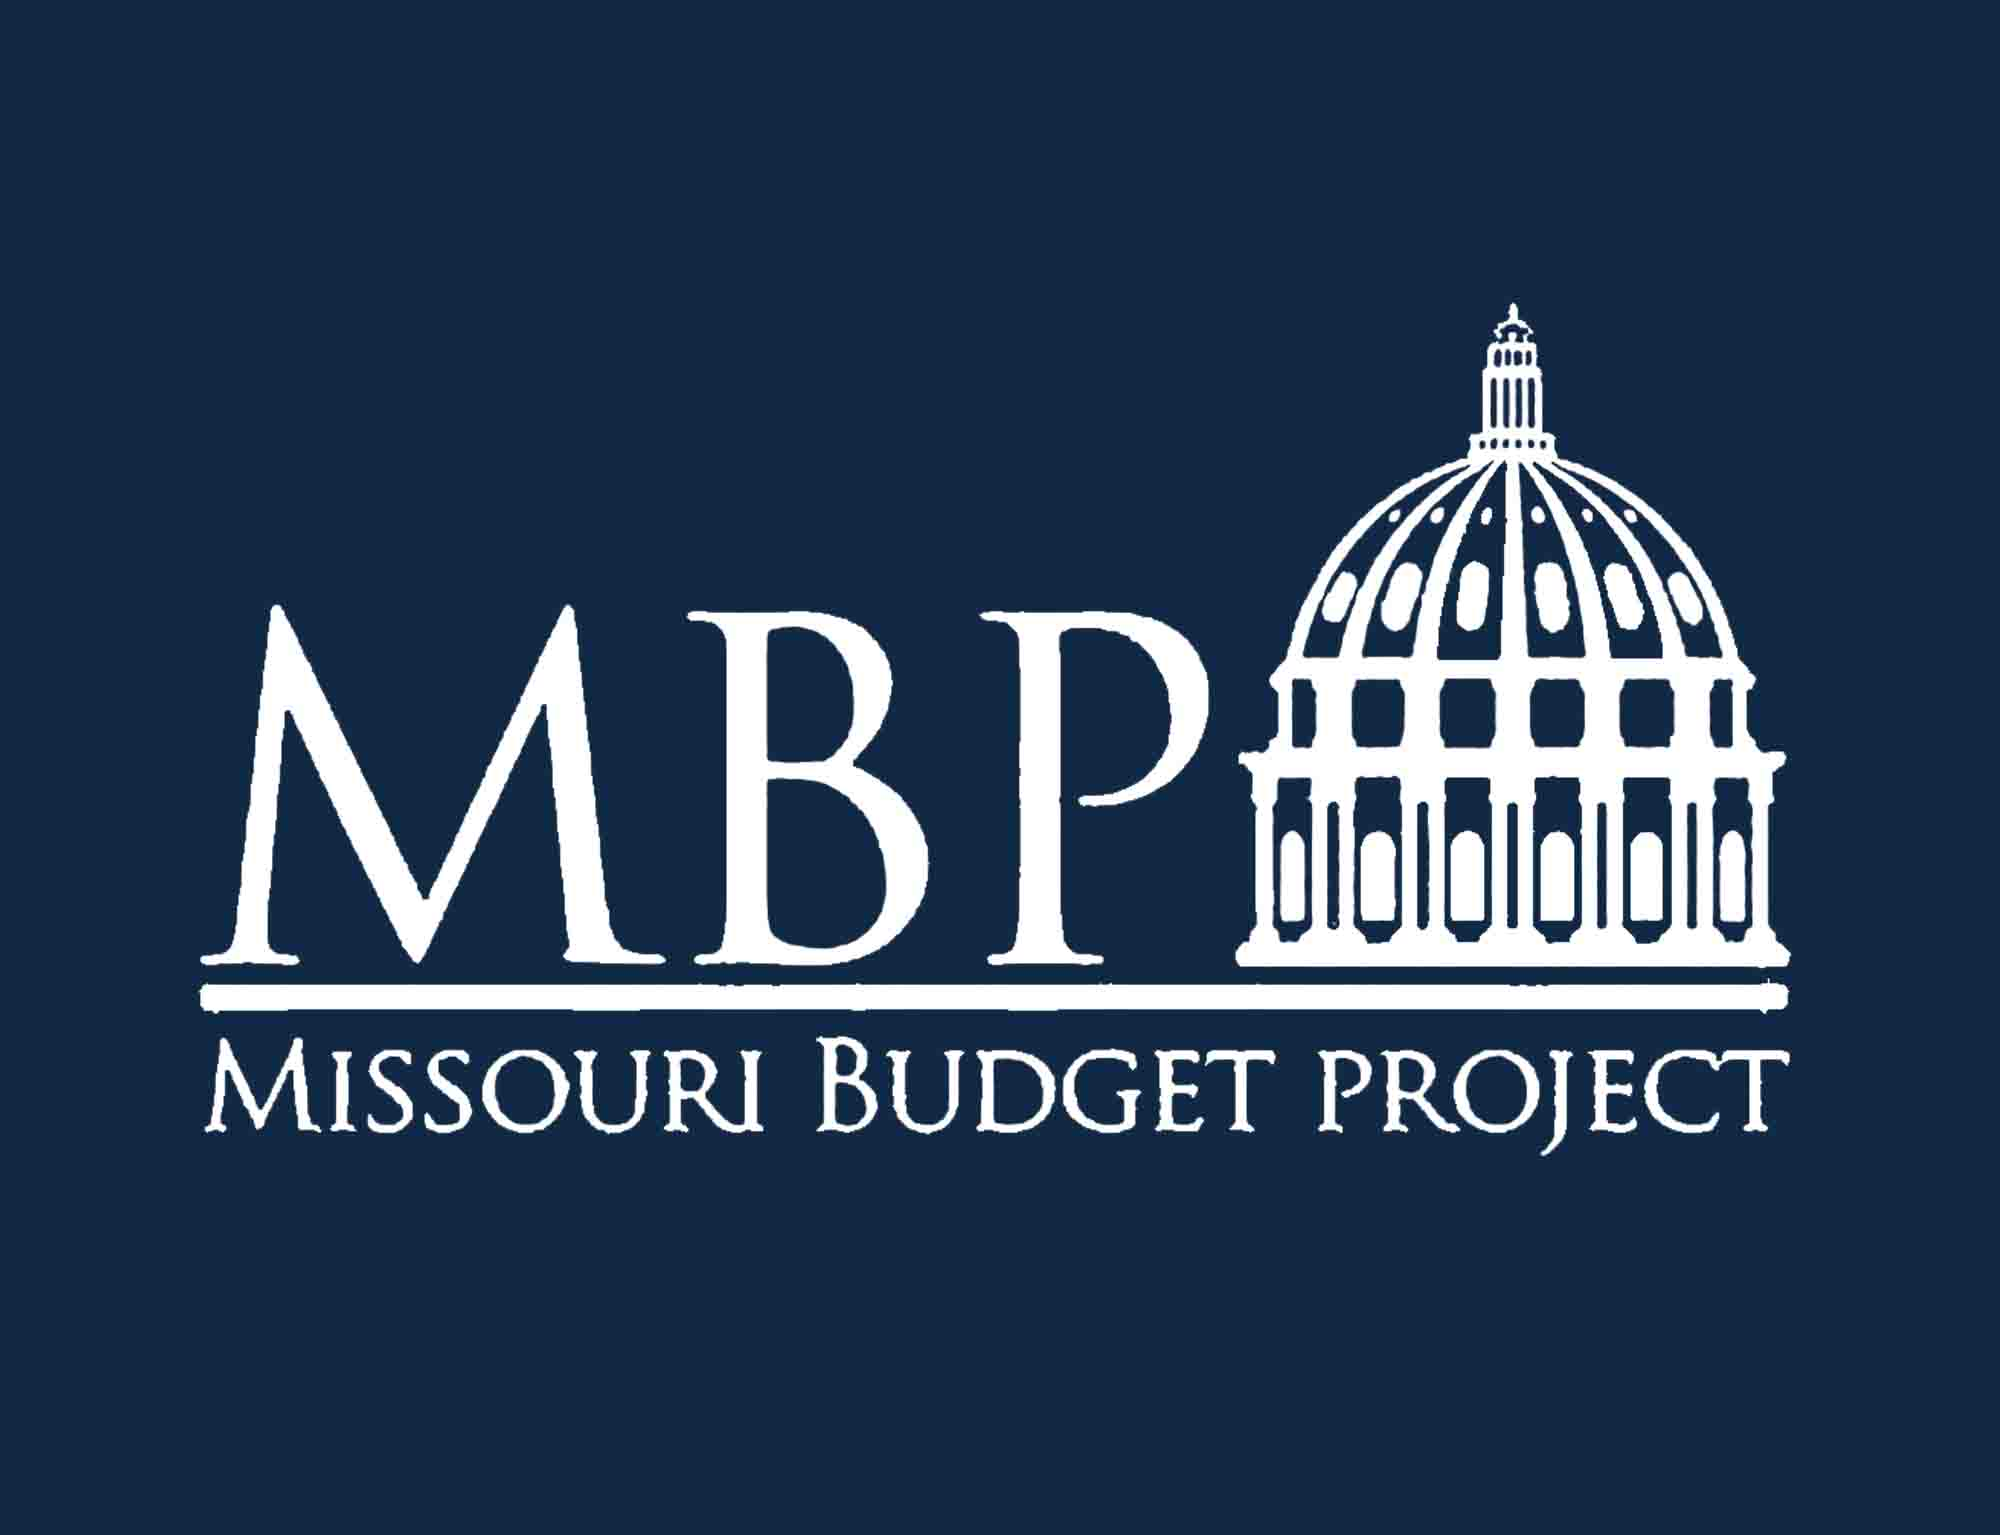 Mo Budget Project